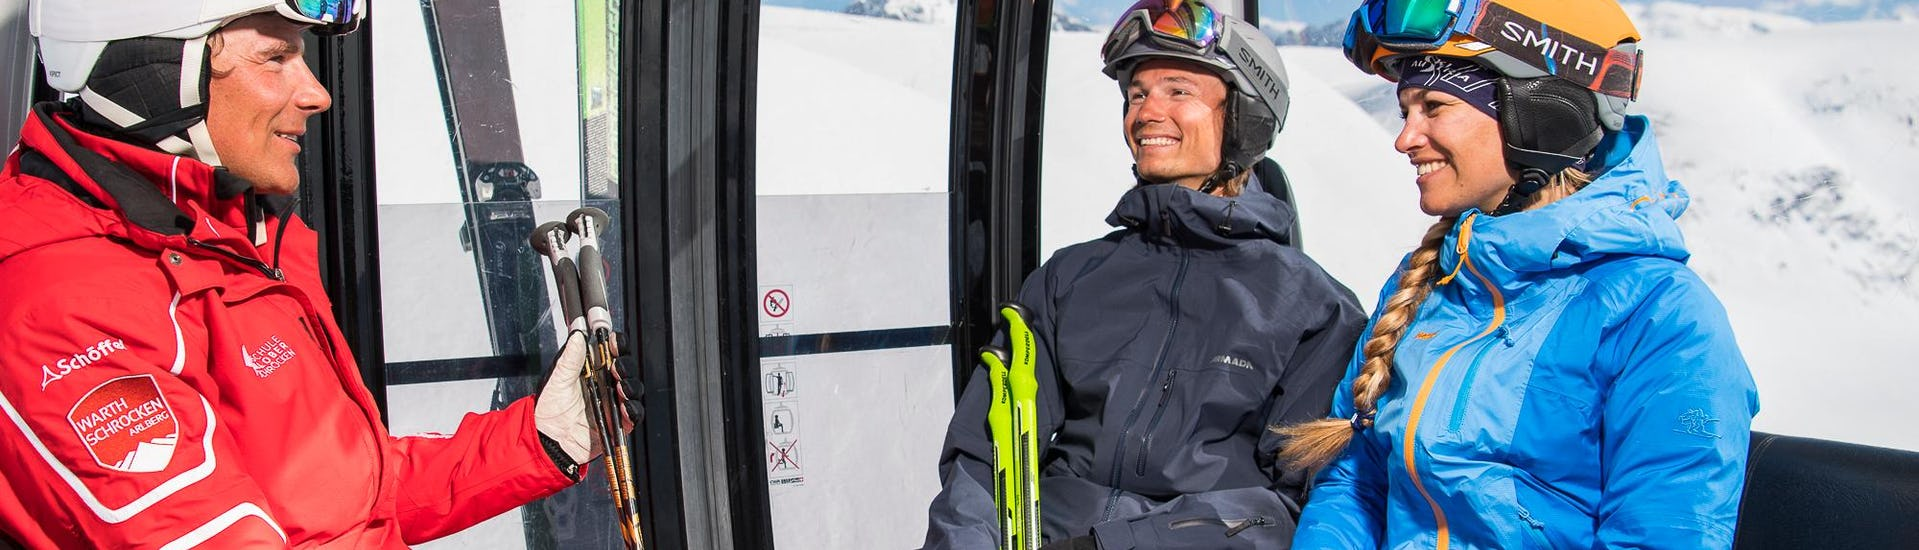 Ski Instructor Private for Adults in Lech